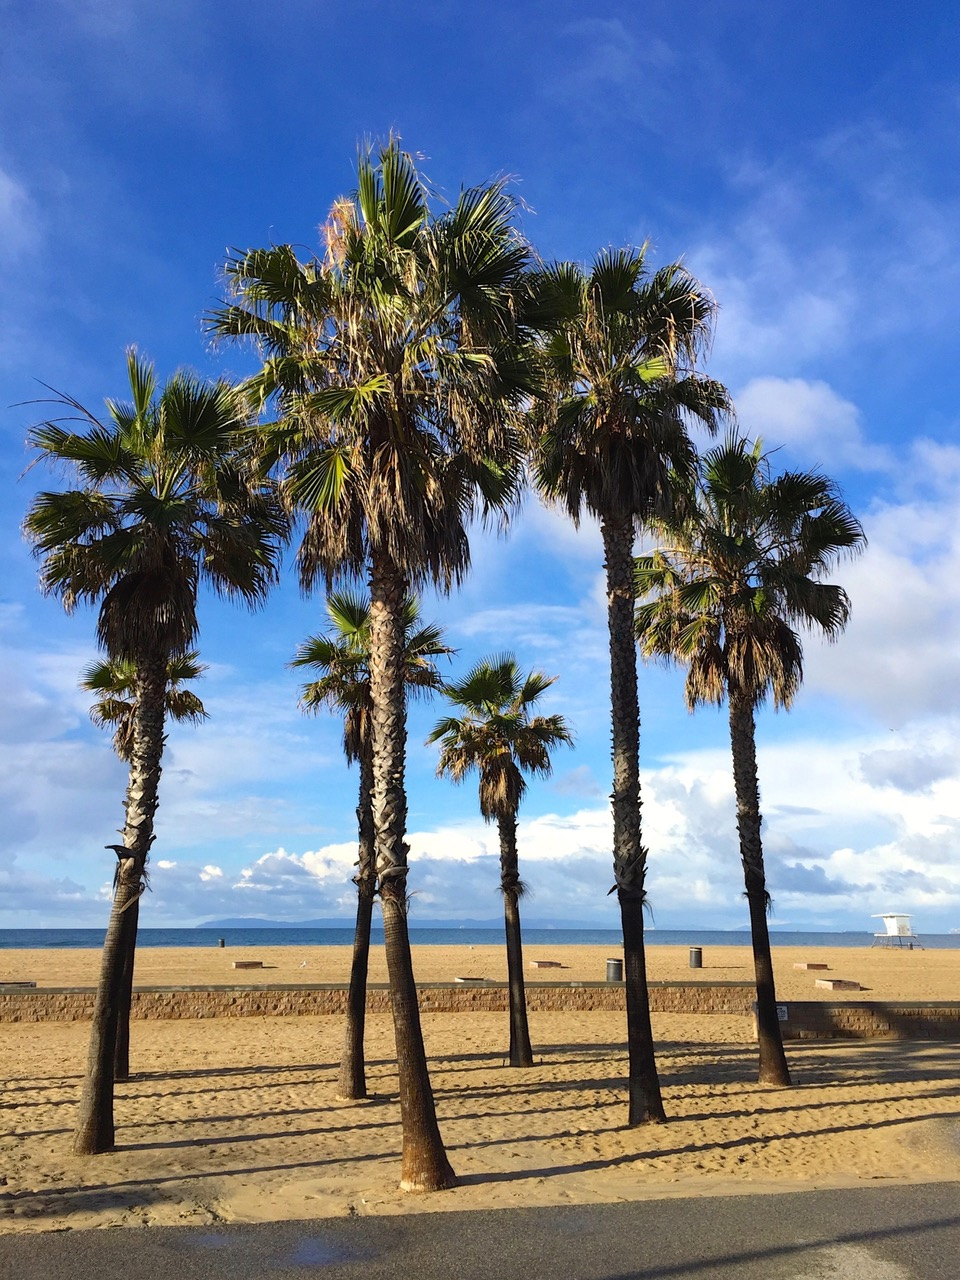 Palm trees at Huntington Beach, California